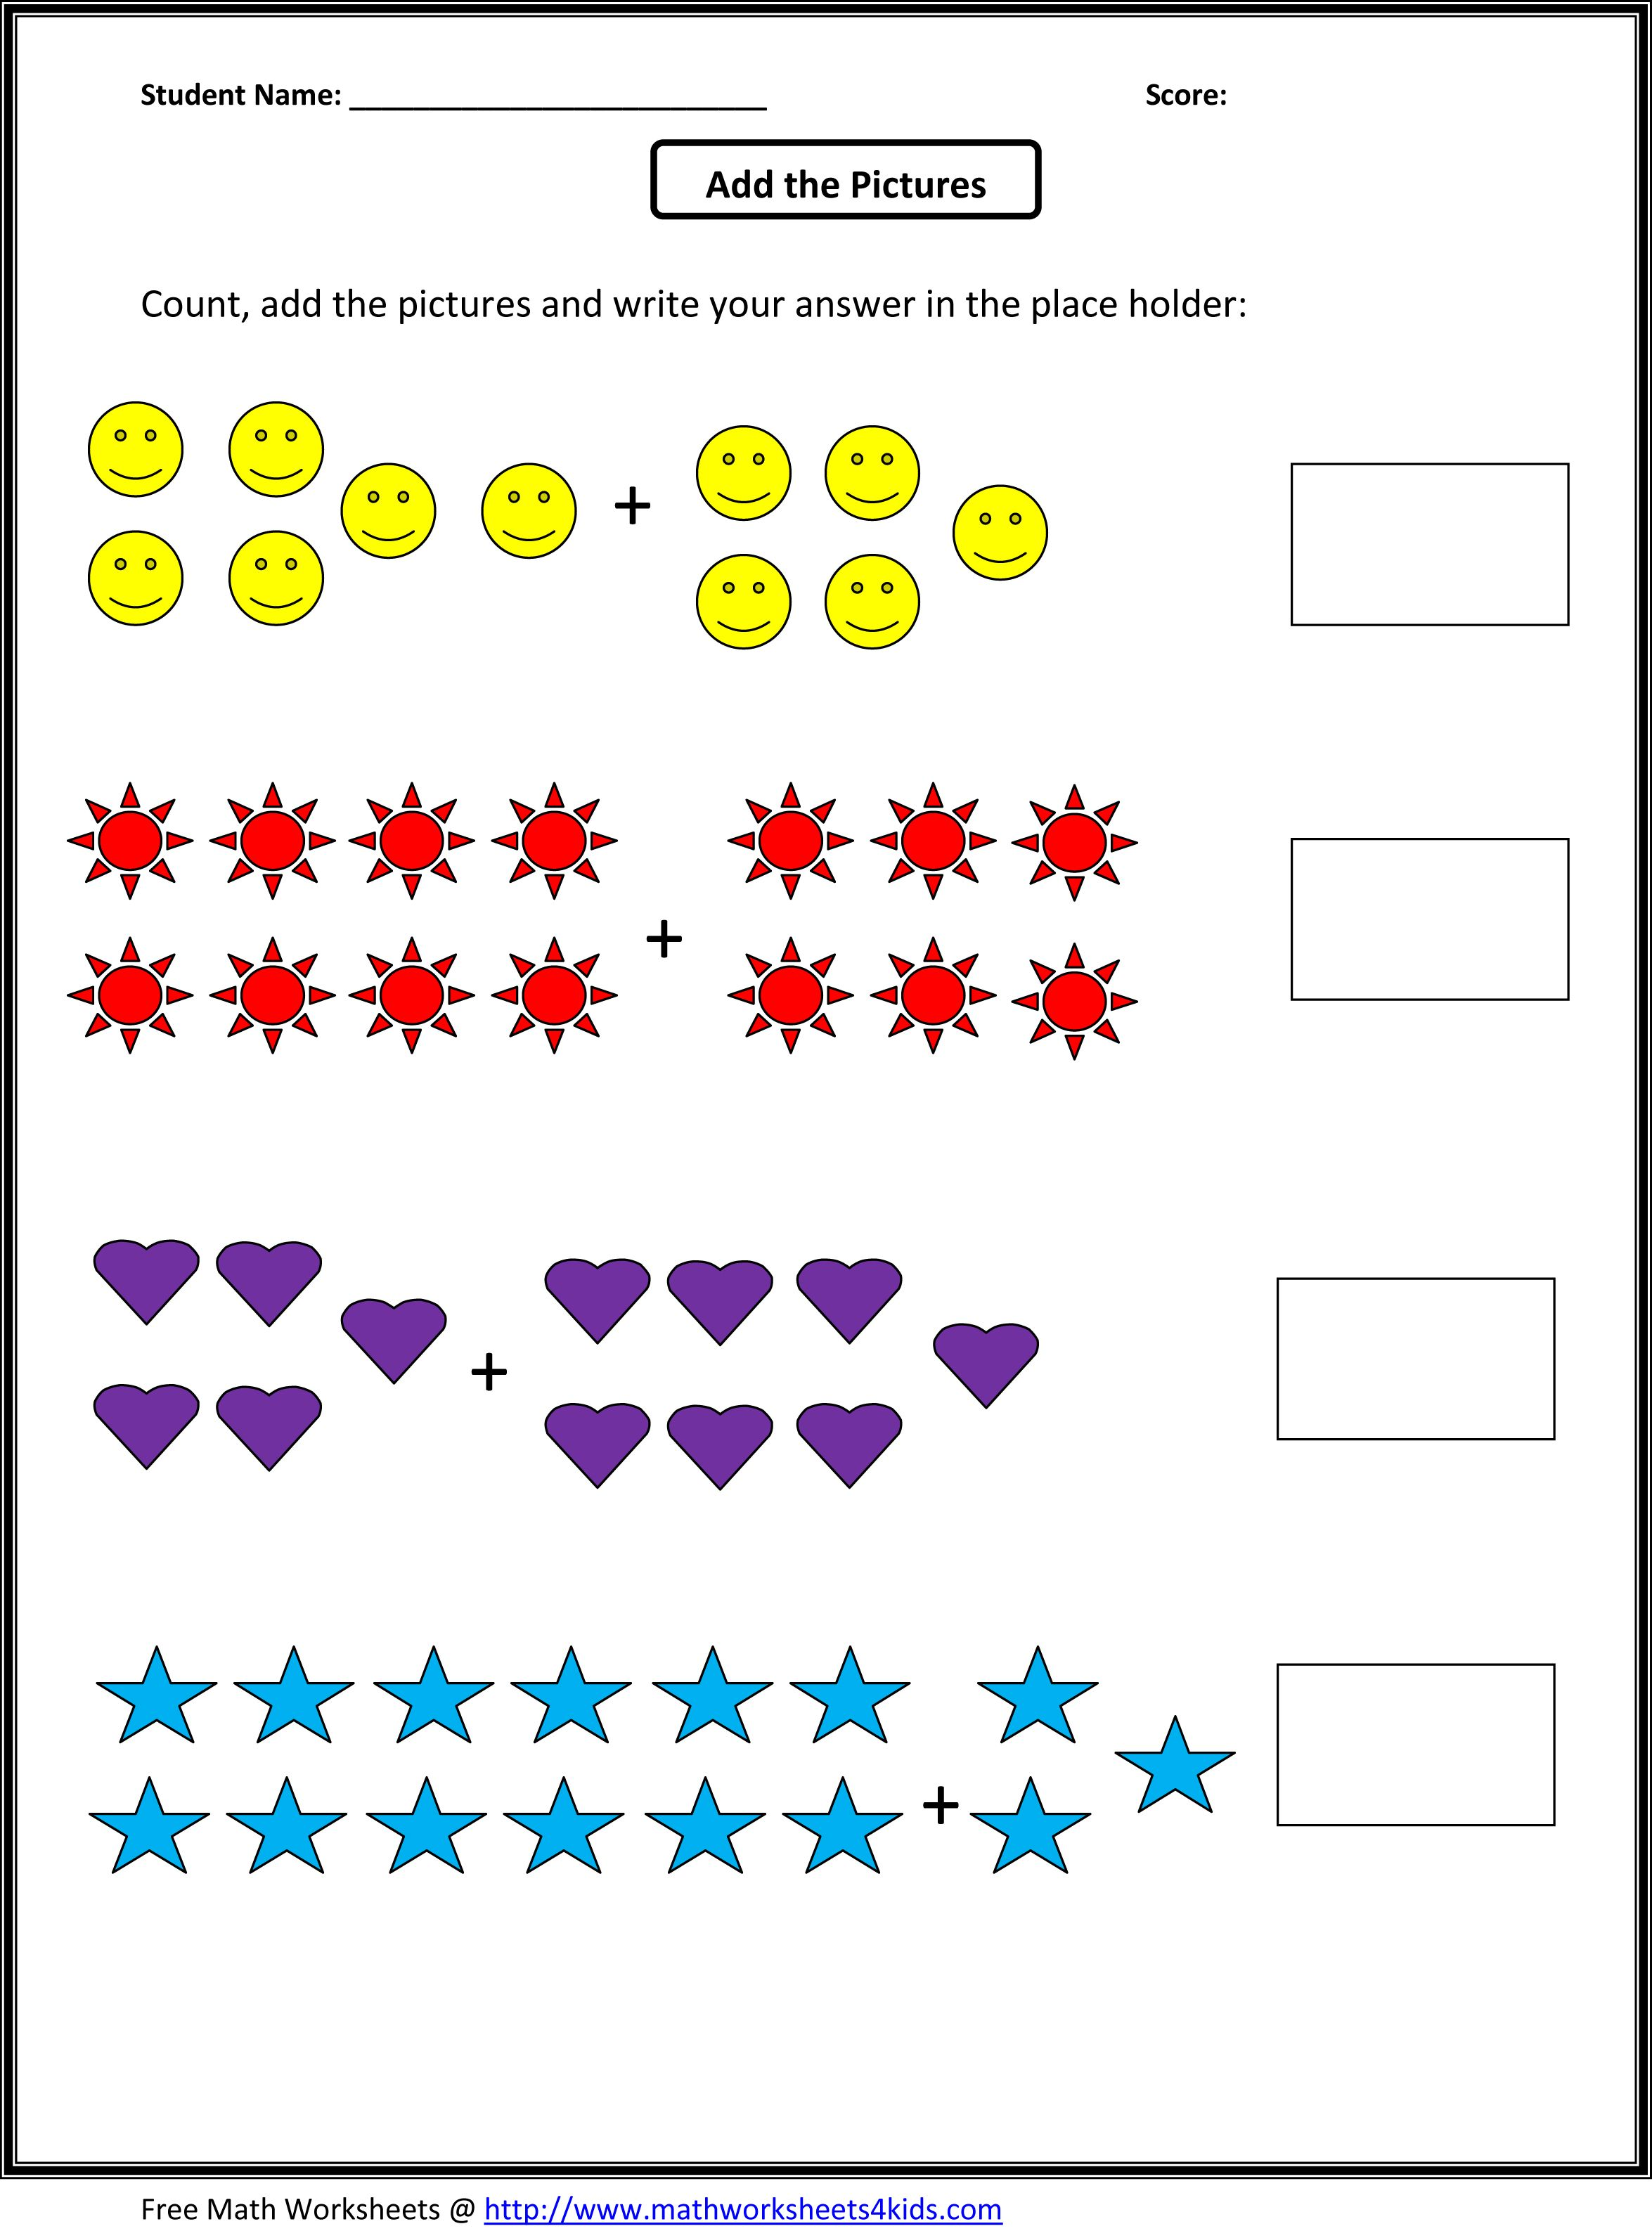 grade 1 addition math worksheets – Grade 1 Math Worksheet